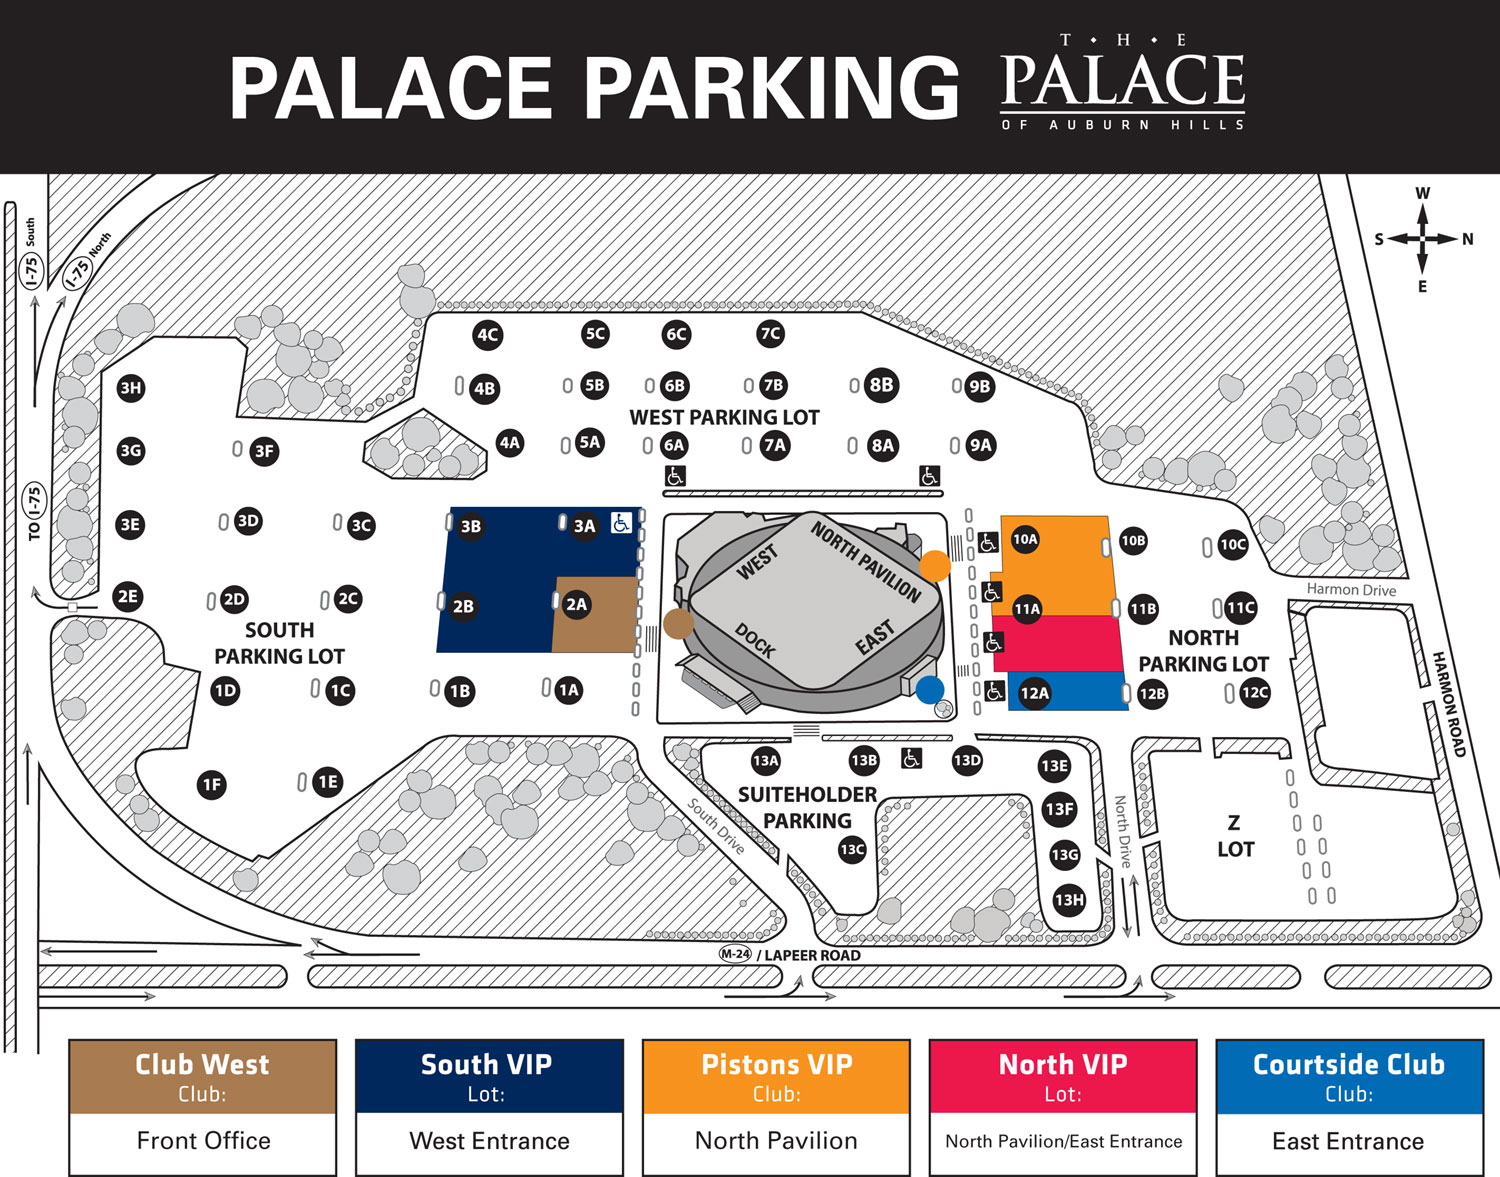 palace_parking_large2.jpg